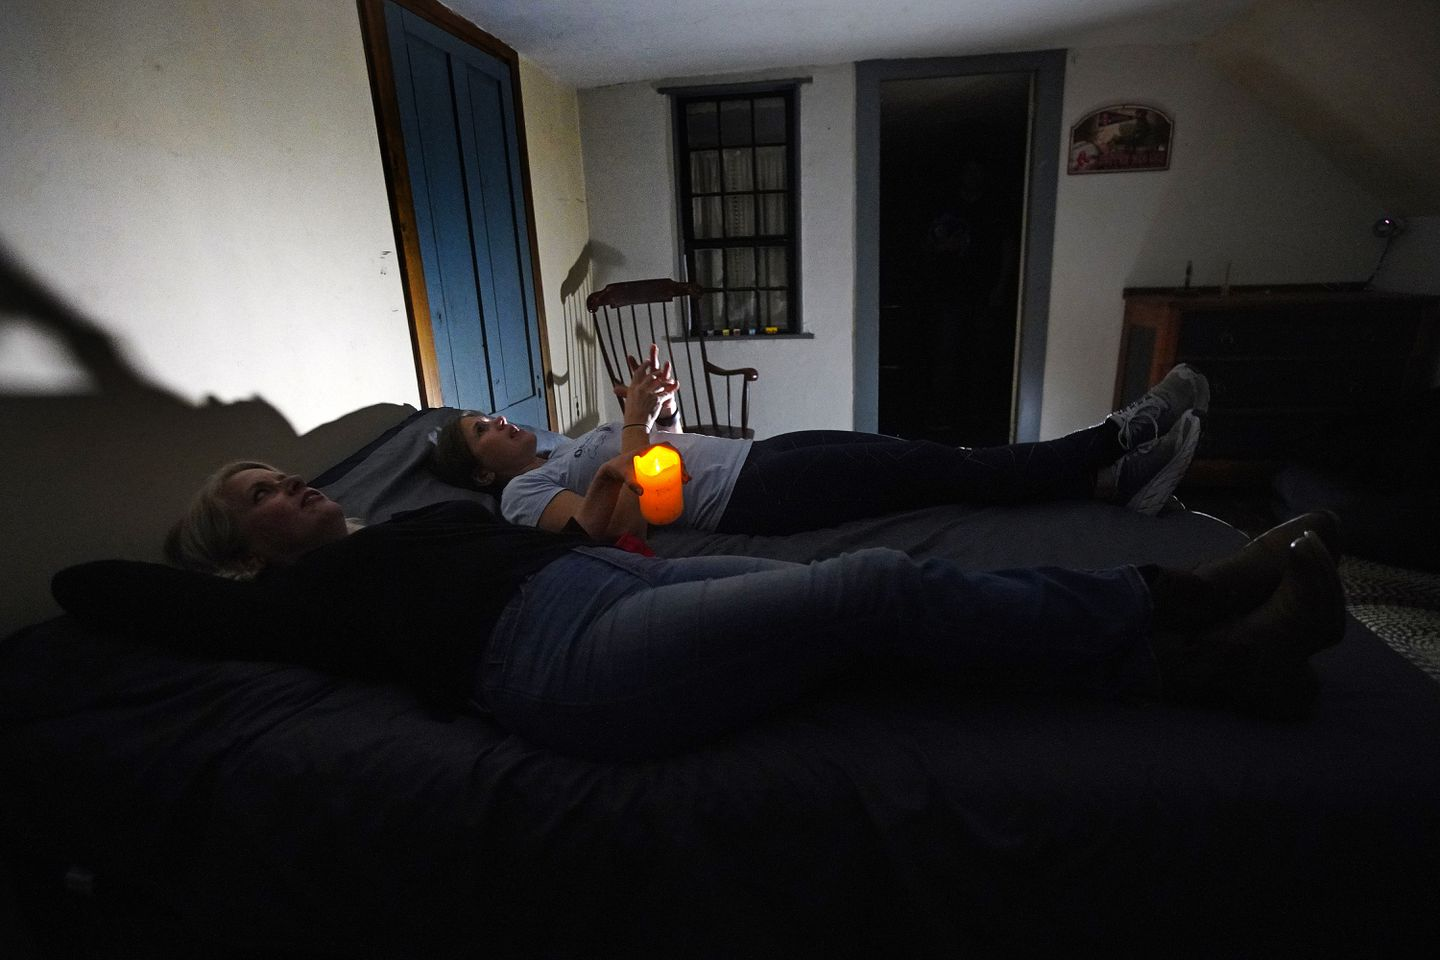 During the initial tour, visitors are encouraged to dim the lights and lie down on the bed in the house's center bedroom to get the best potential paranormal experience.